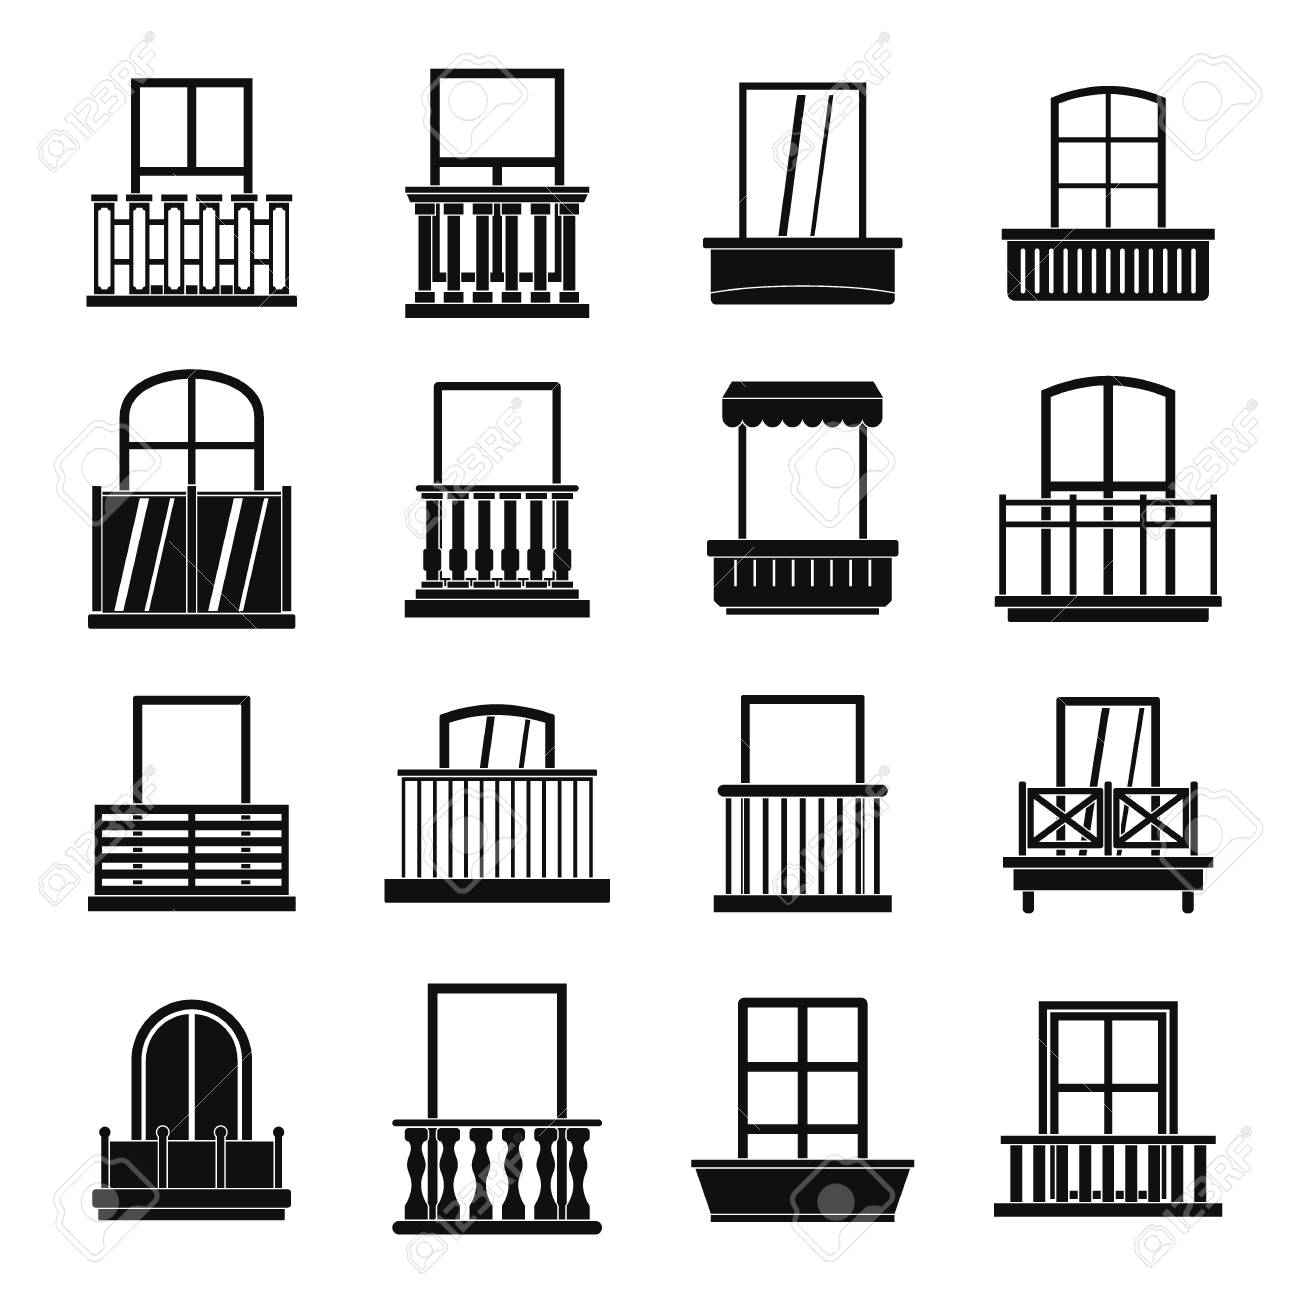 Furniture clipart simple window. Free download clip art